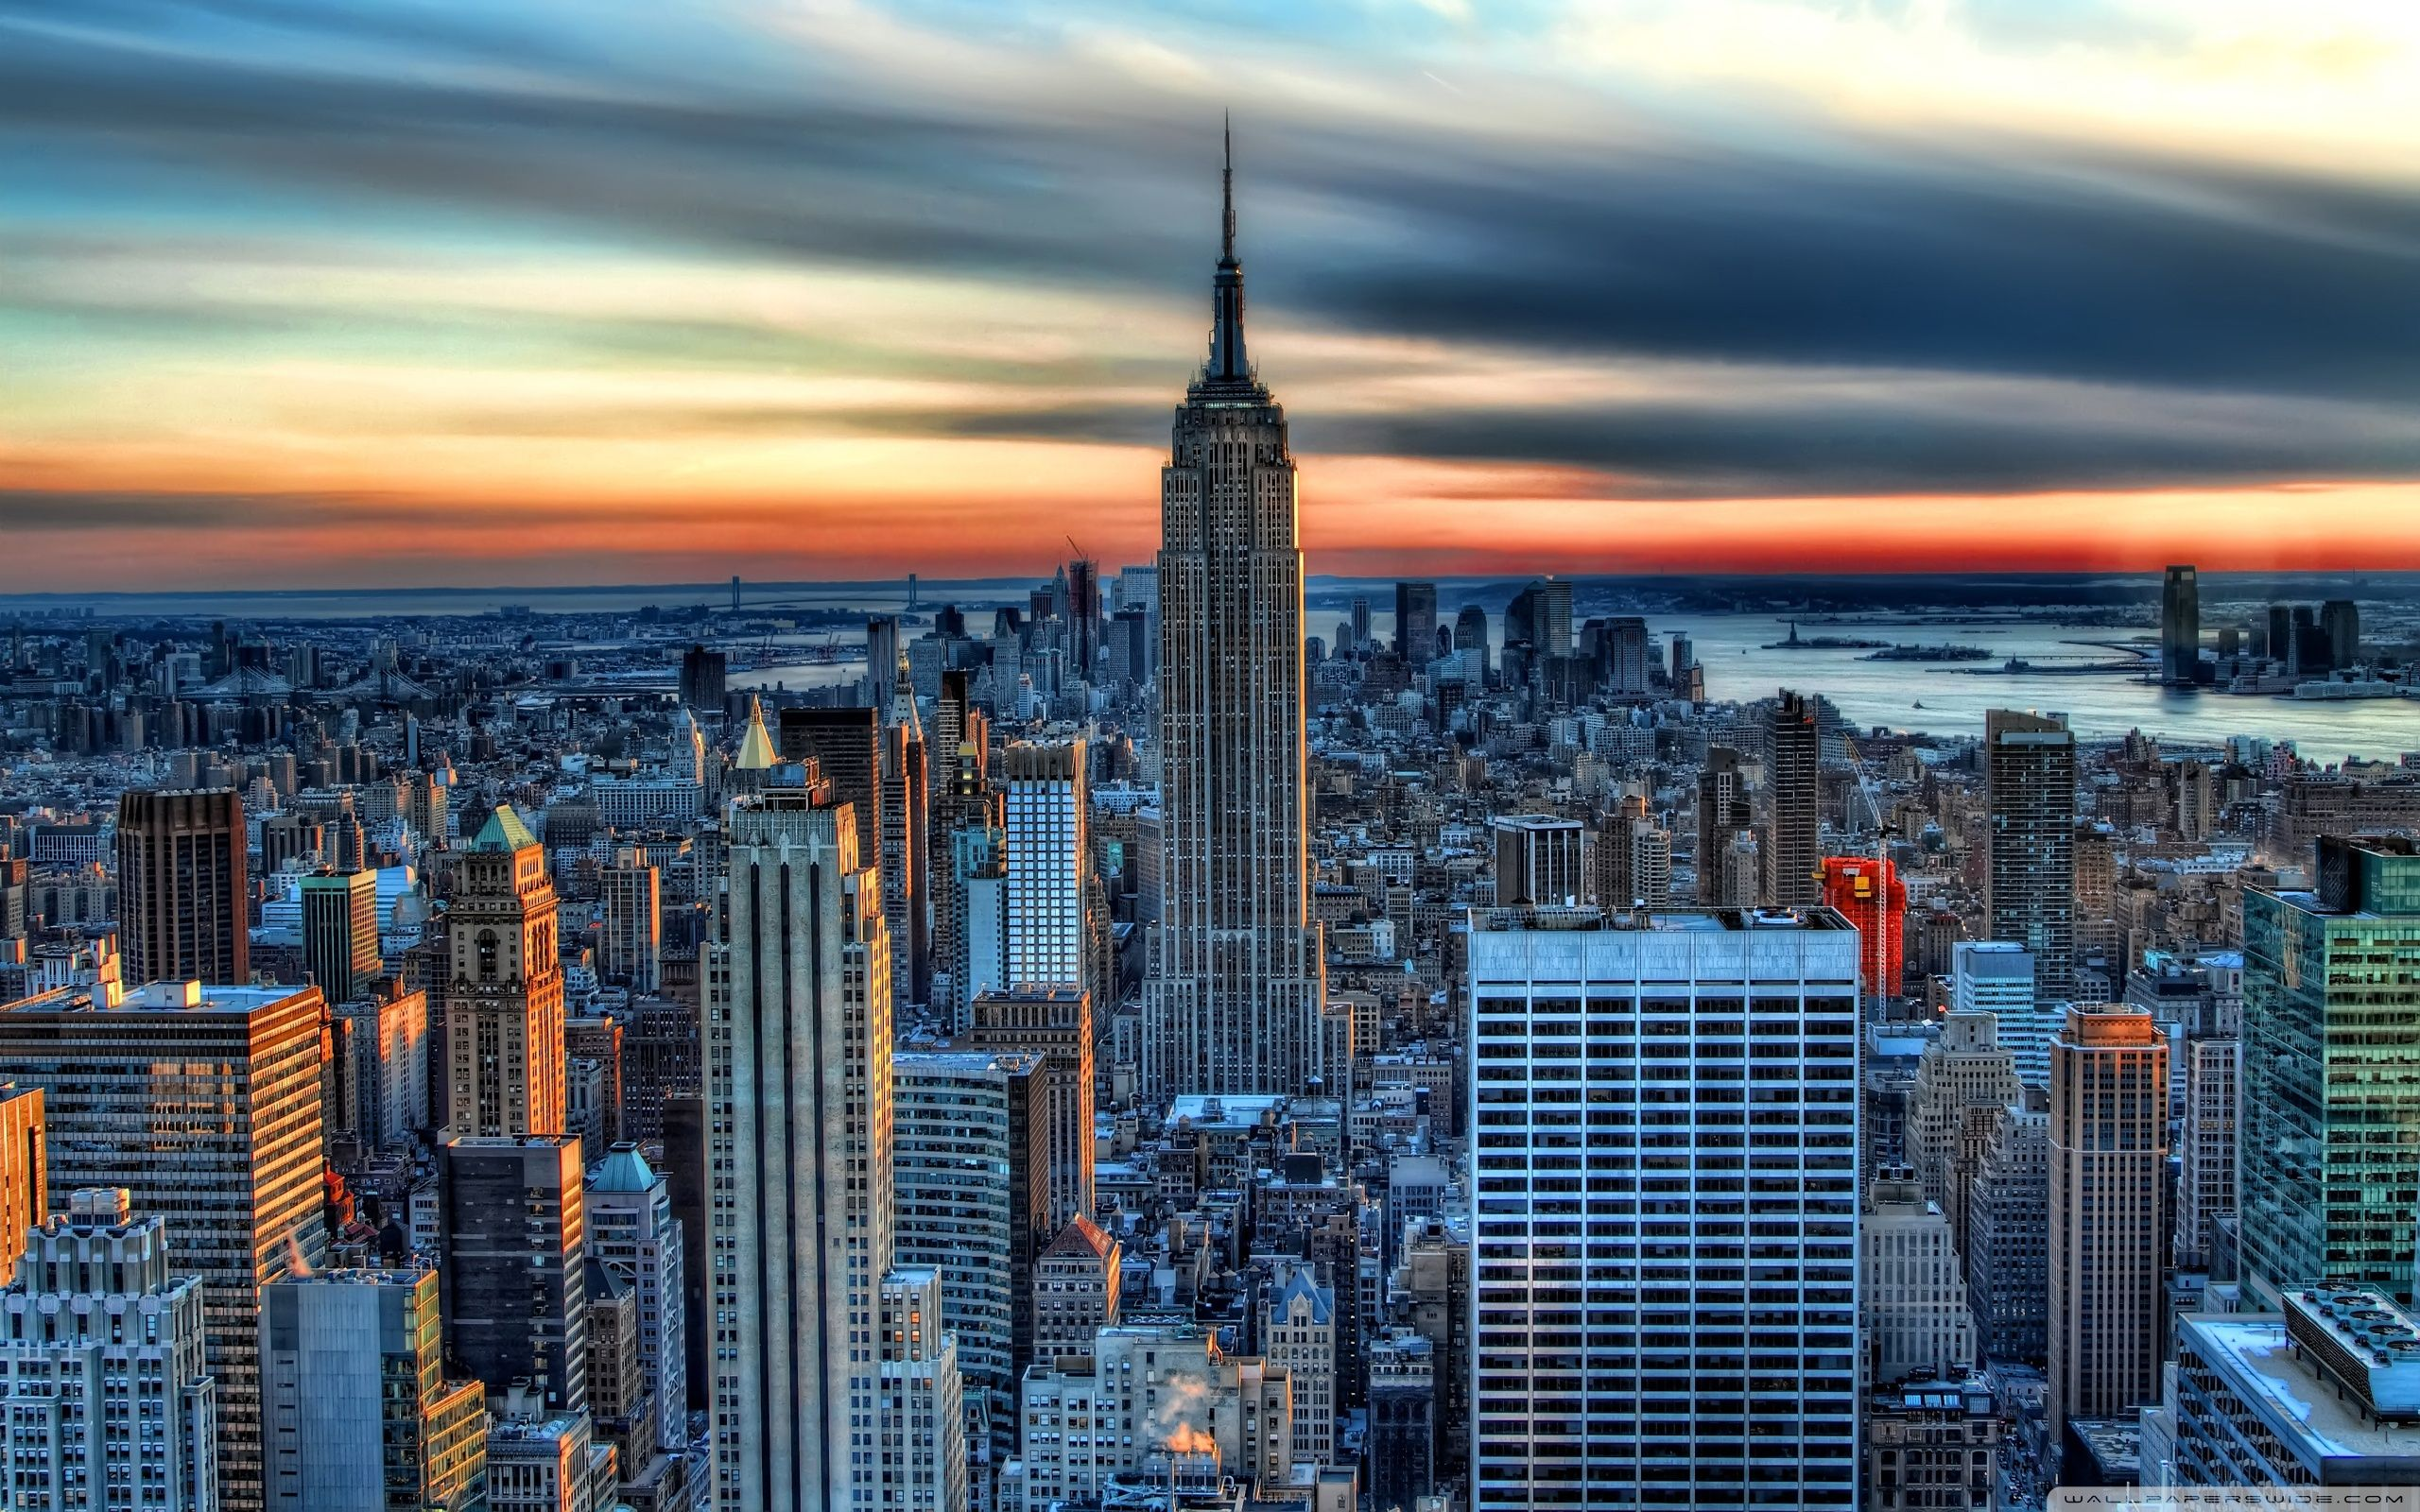 35 New York Buildings Wallpapers   Download at WallpaperBro 2560x1600